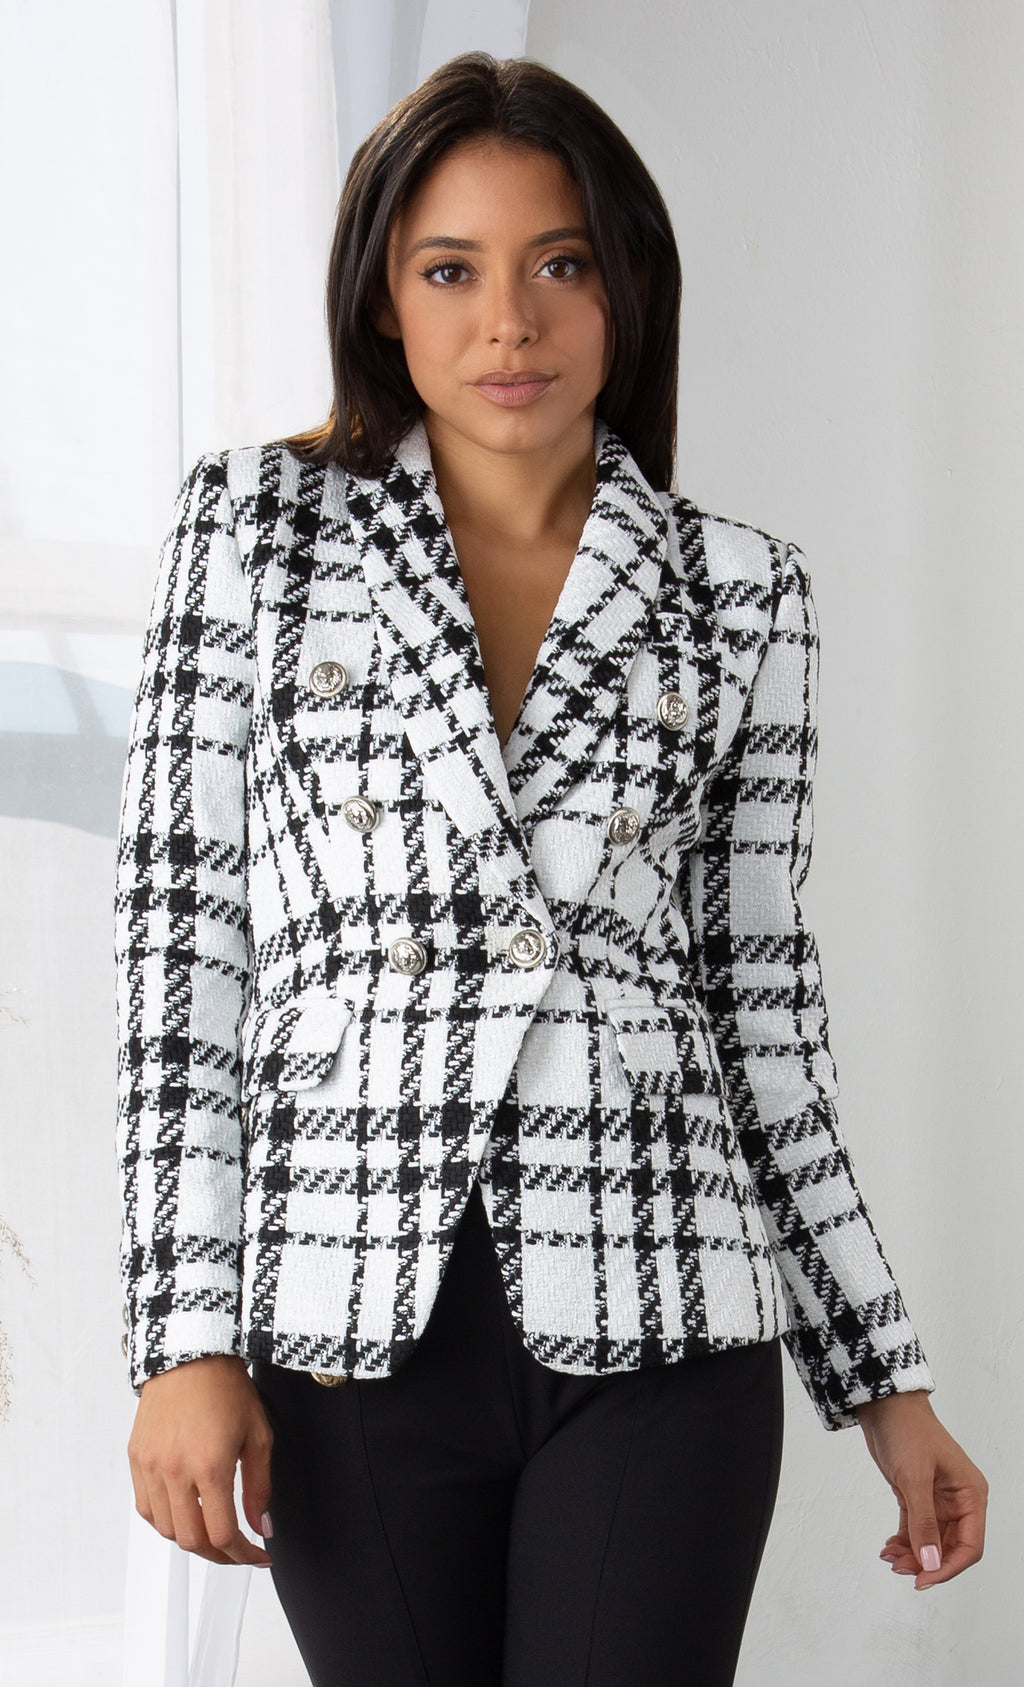 Atelier Attitude Black White Plaid Tweed Pattern Long Sleeve Gold Button Woolen Double Breast Blazer Jacket Outerwear